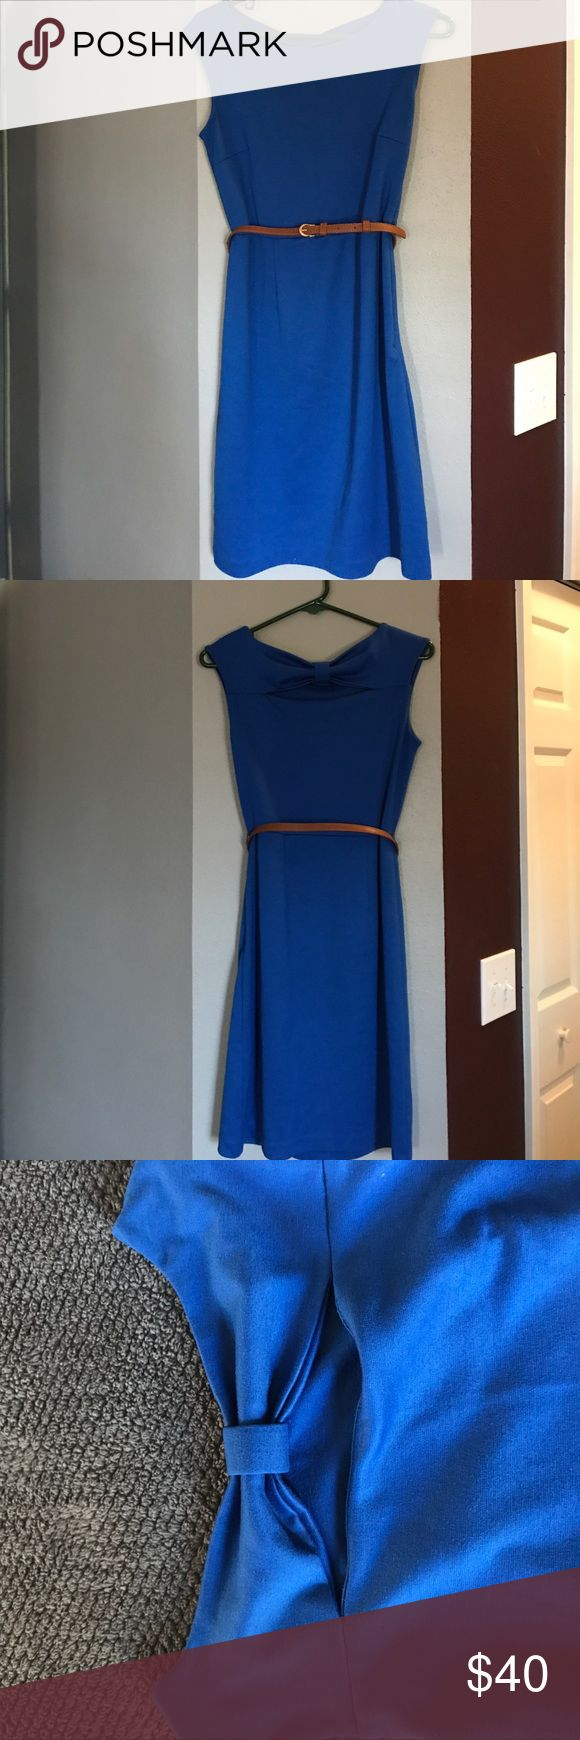 🦋Limited royal blue dress with  belt The Limited royal blue dress with brown skinny belt(picture 6). Has a zipper on left side, but I doubt you'll need it. This dress is liken to t-shirt material. Super soft and a fun cutout in the back. Dress this up with a blazer or down with a cardigan or denim jacket. Pretty blue color is great for color blocking 🌺 Dresses